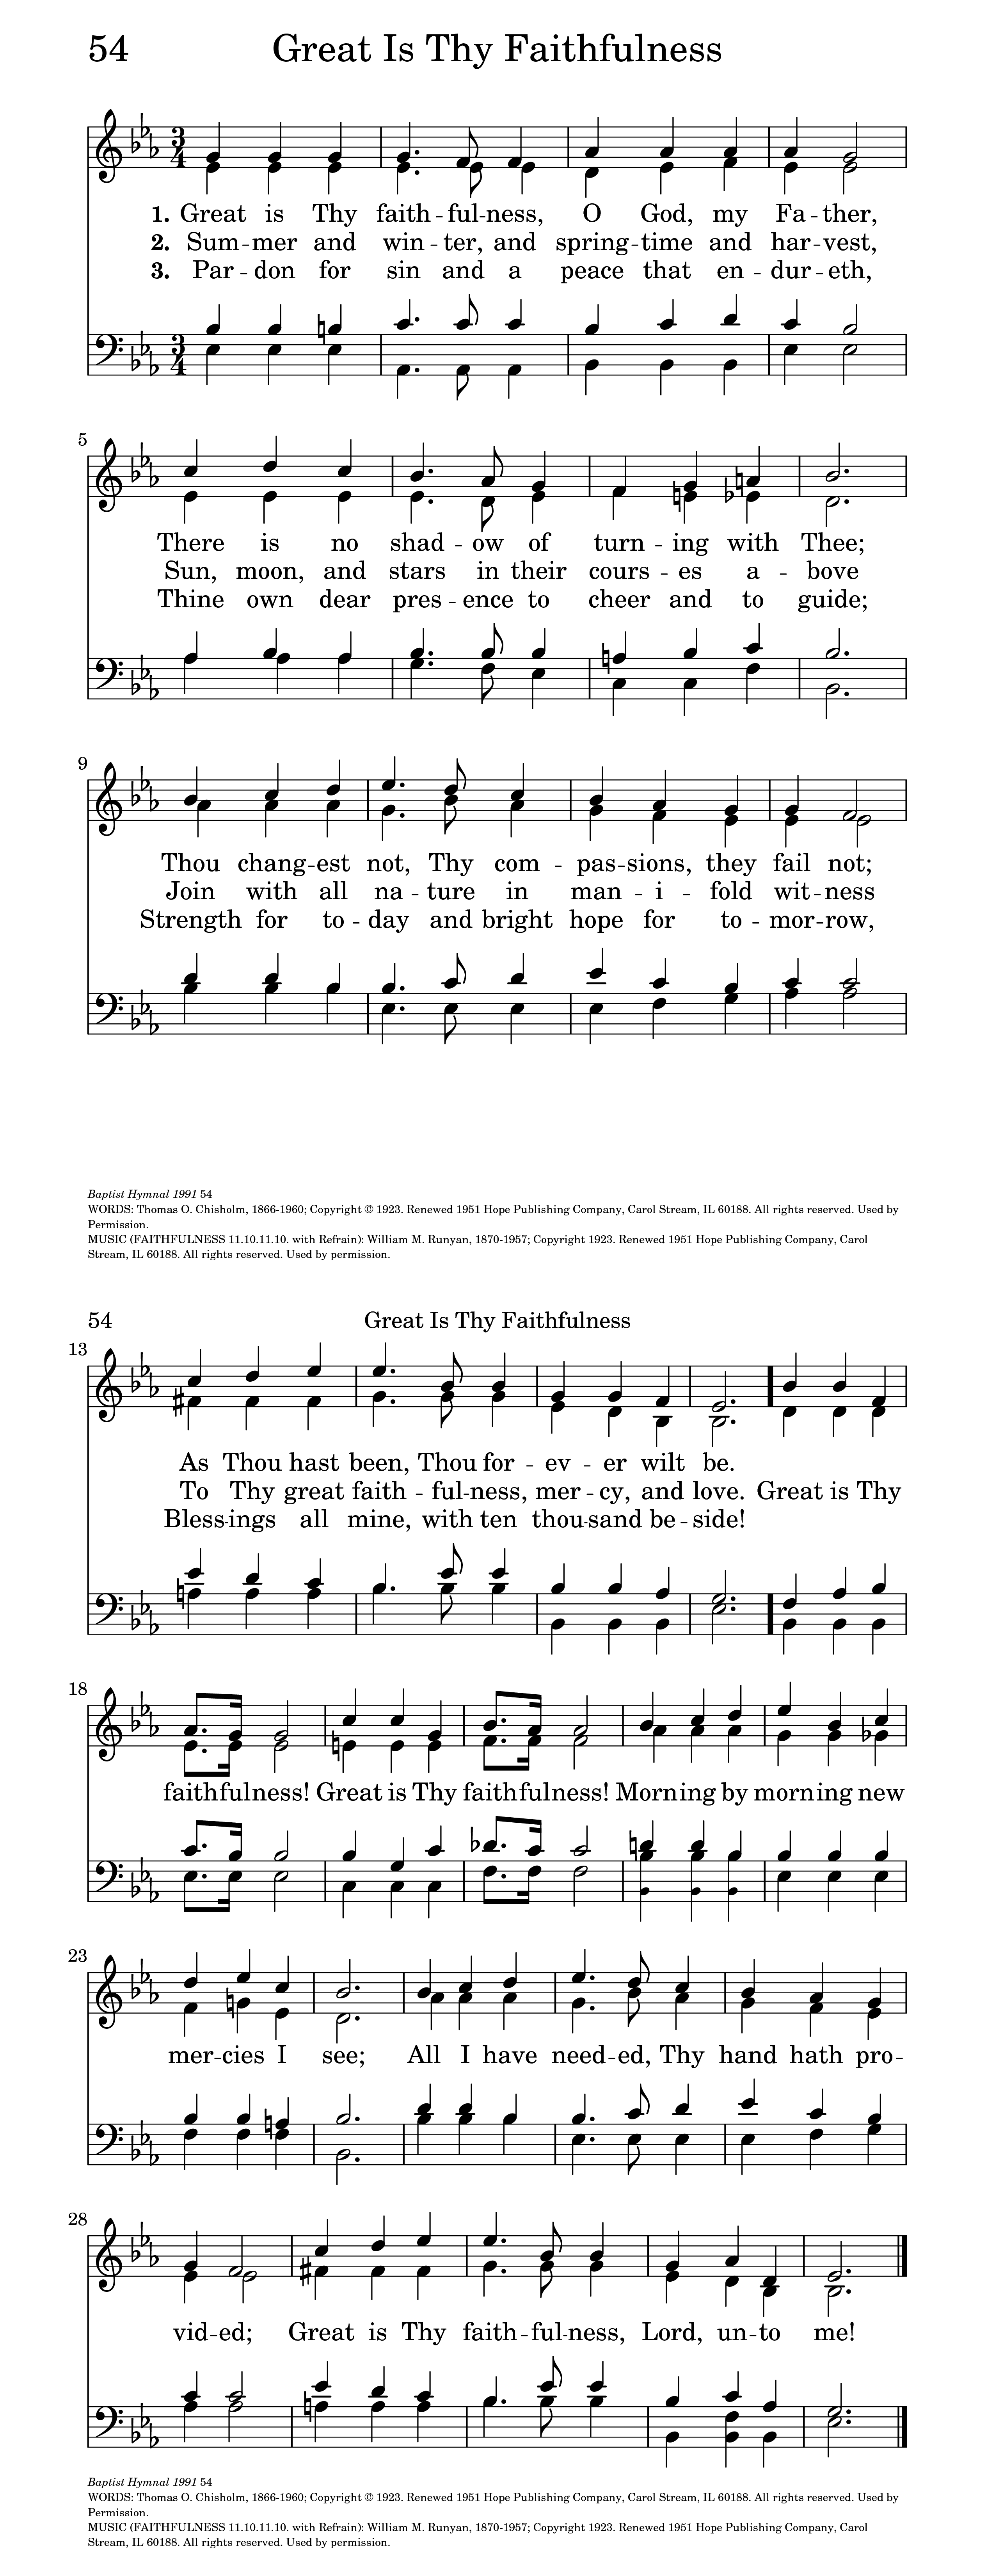 photograph about Free Printable Black Gospel Sheet Music referred to as Ideal Is Thy Faithfulness